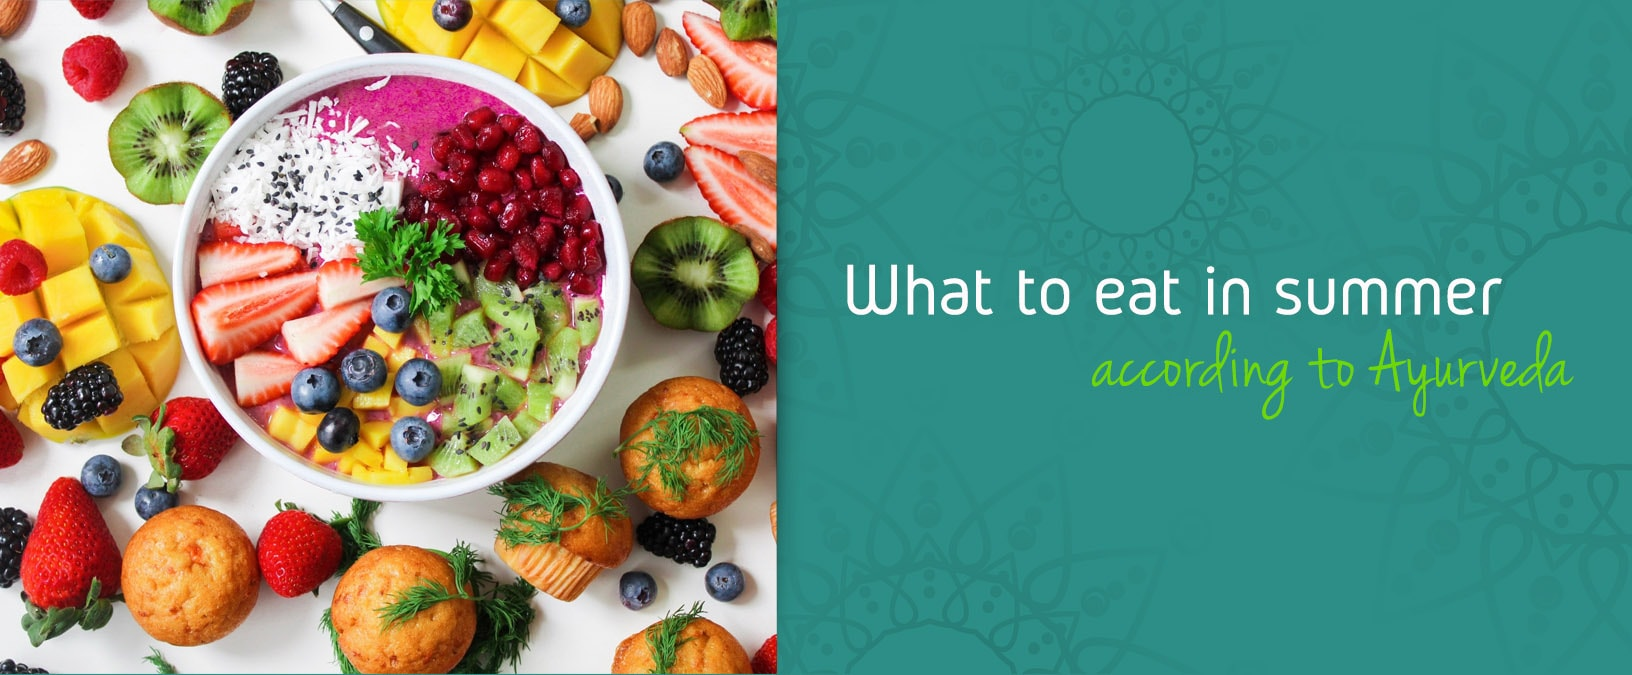 What to eat in summer according to Ayurveda